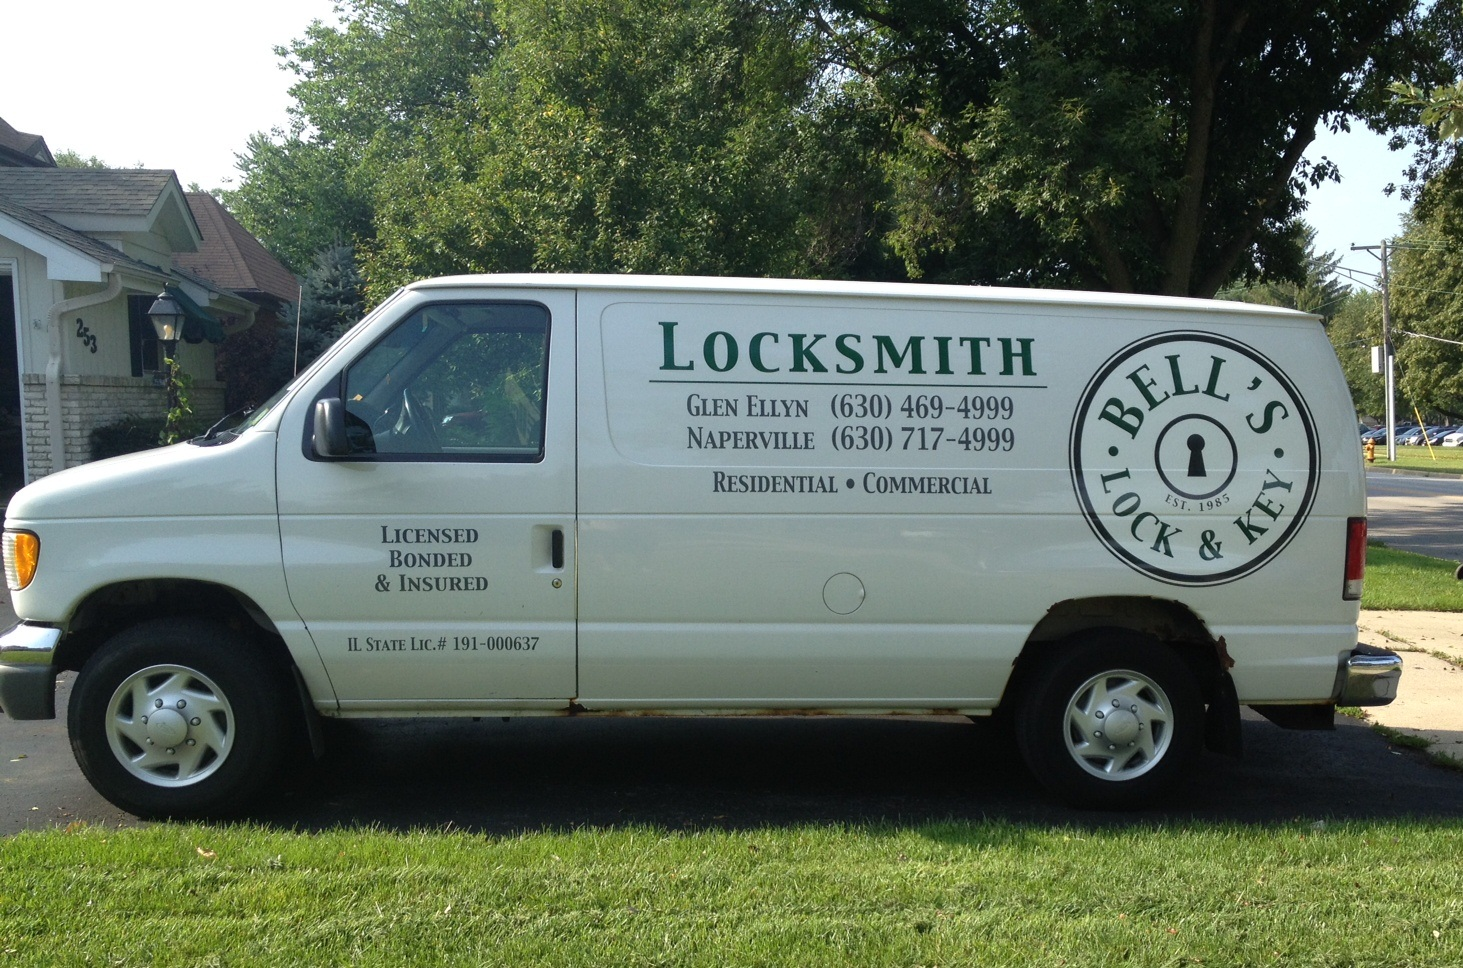 Bell's Lock & Key Van